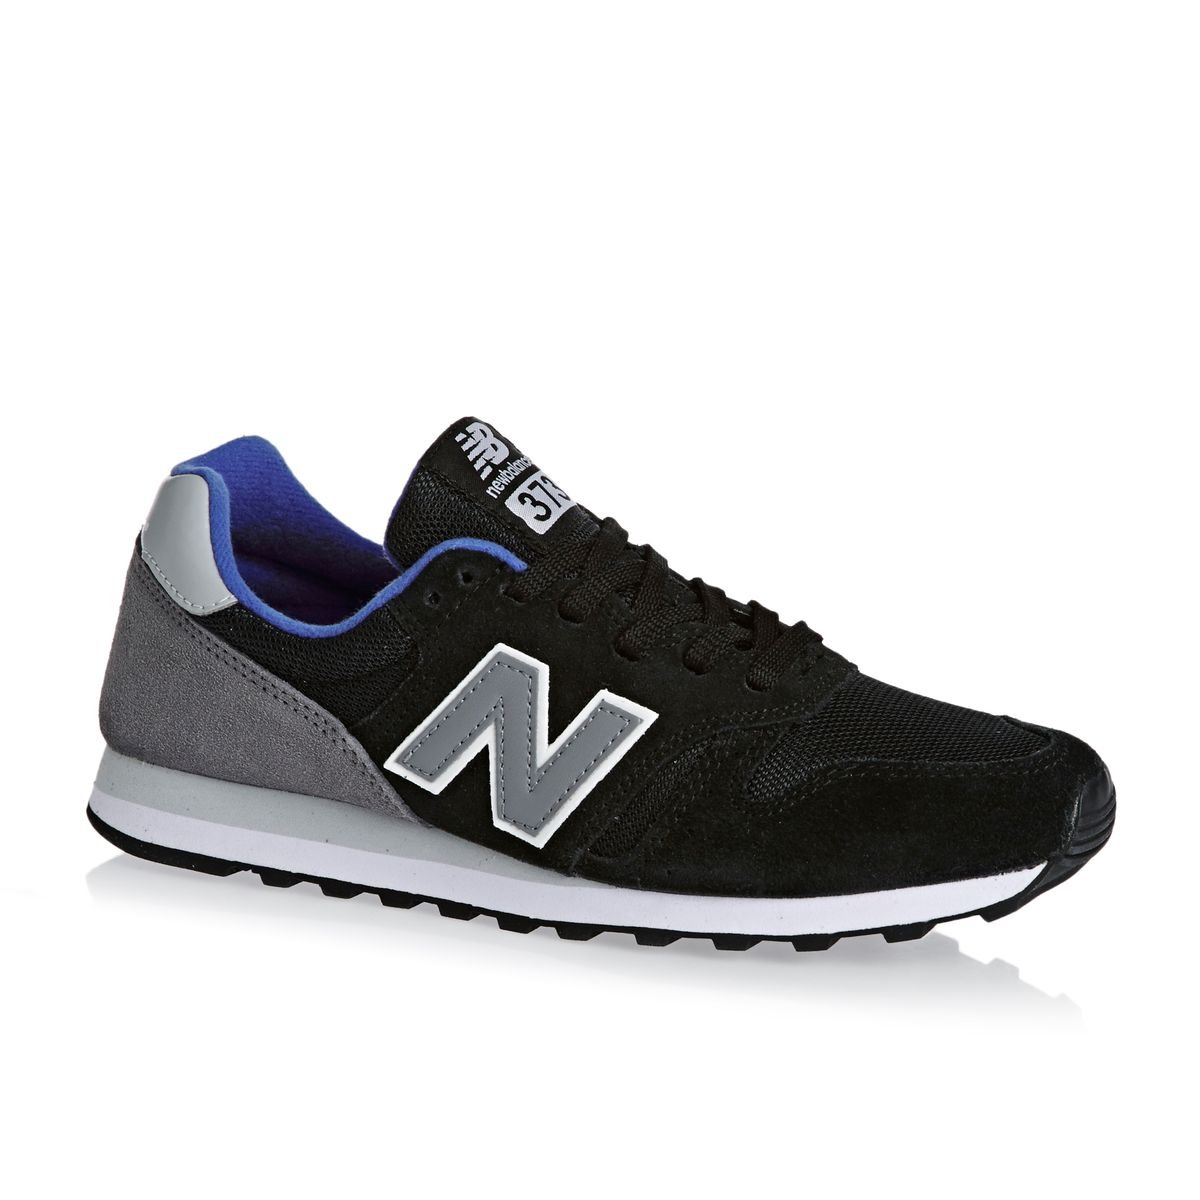 37 521261 Black Sneaker ML373 60 New Herren Balance YwSBIqxna0